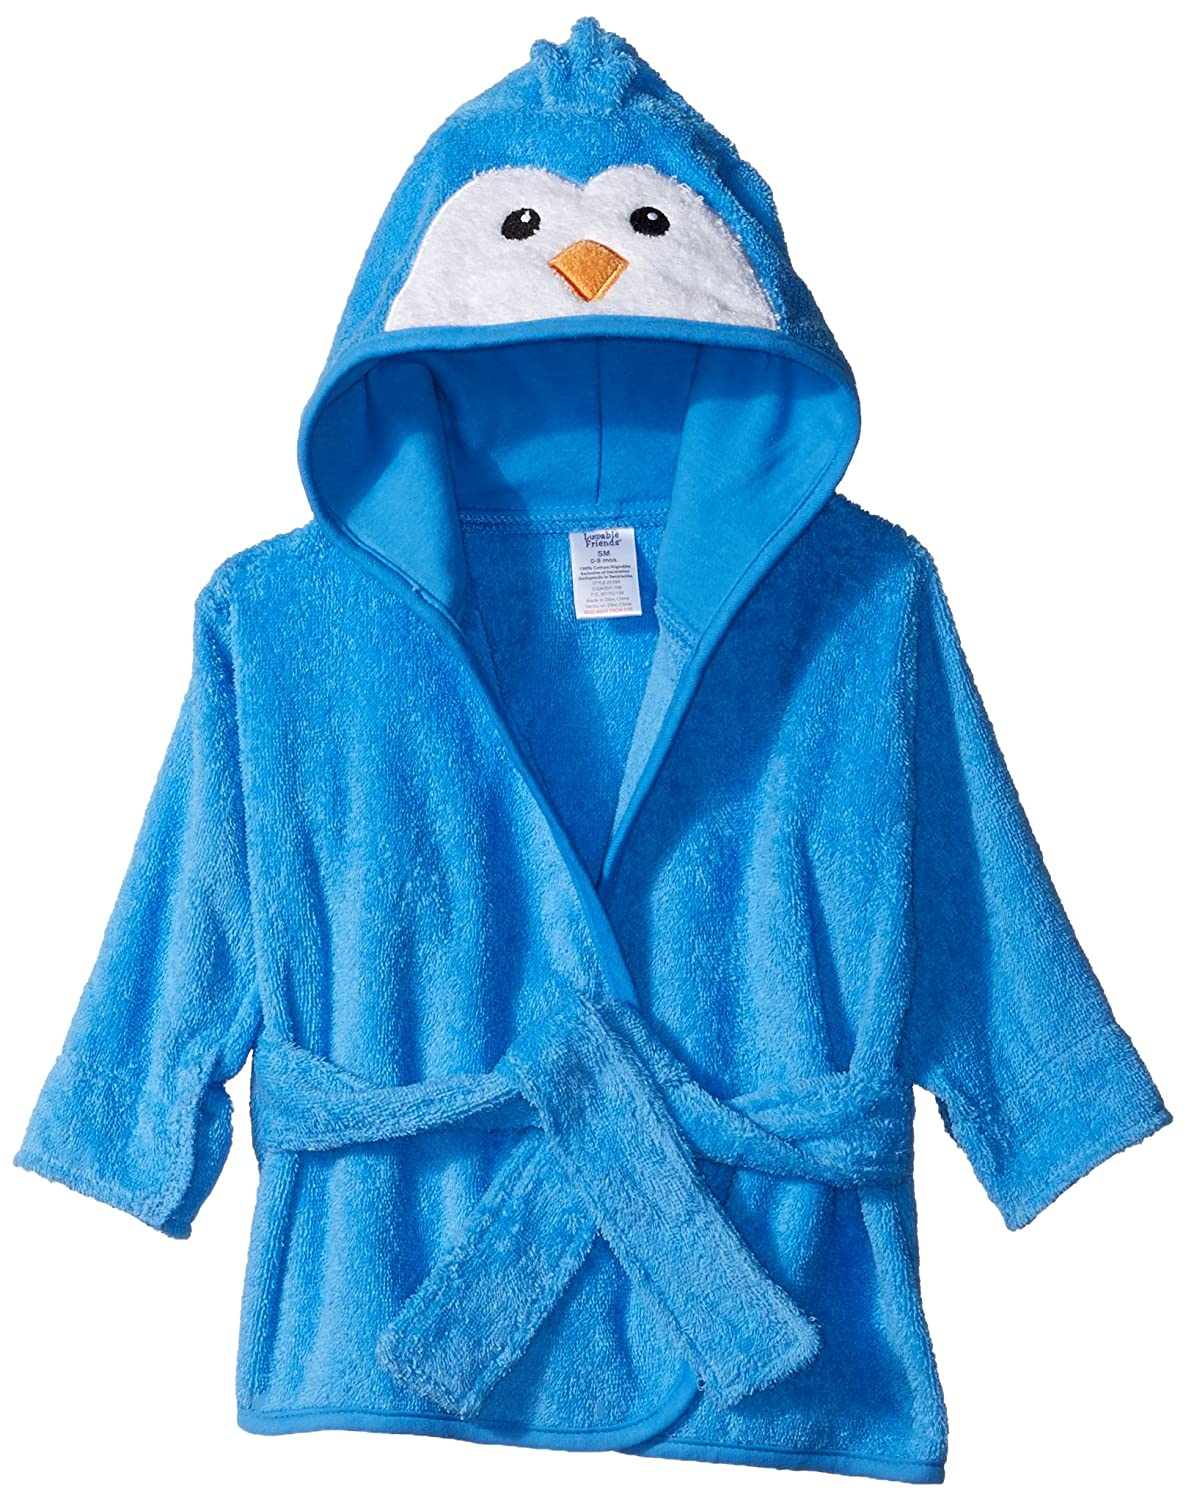 Luvable Friends Animal Hooded Bathrobe, Bear BabyVision 05222_Bear